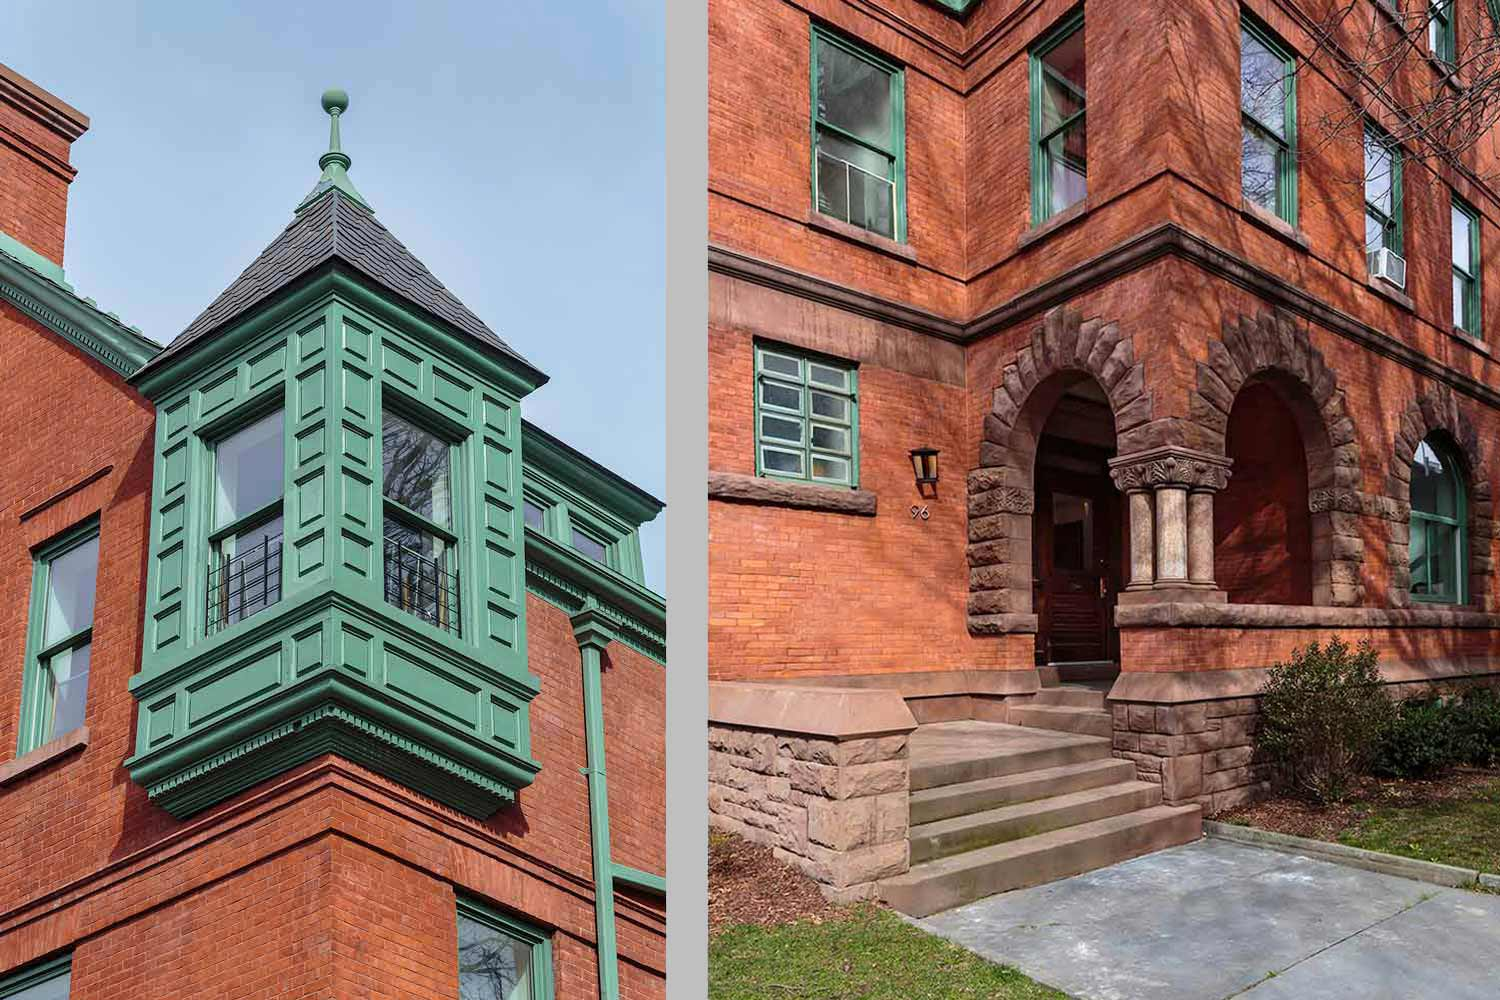 Historic details such as the corner tower and entrance loggia were restored to their original condition.